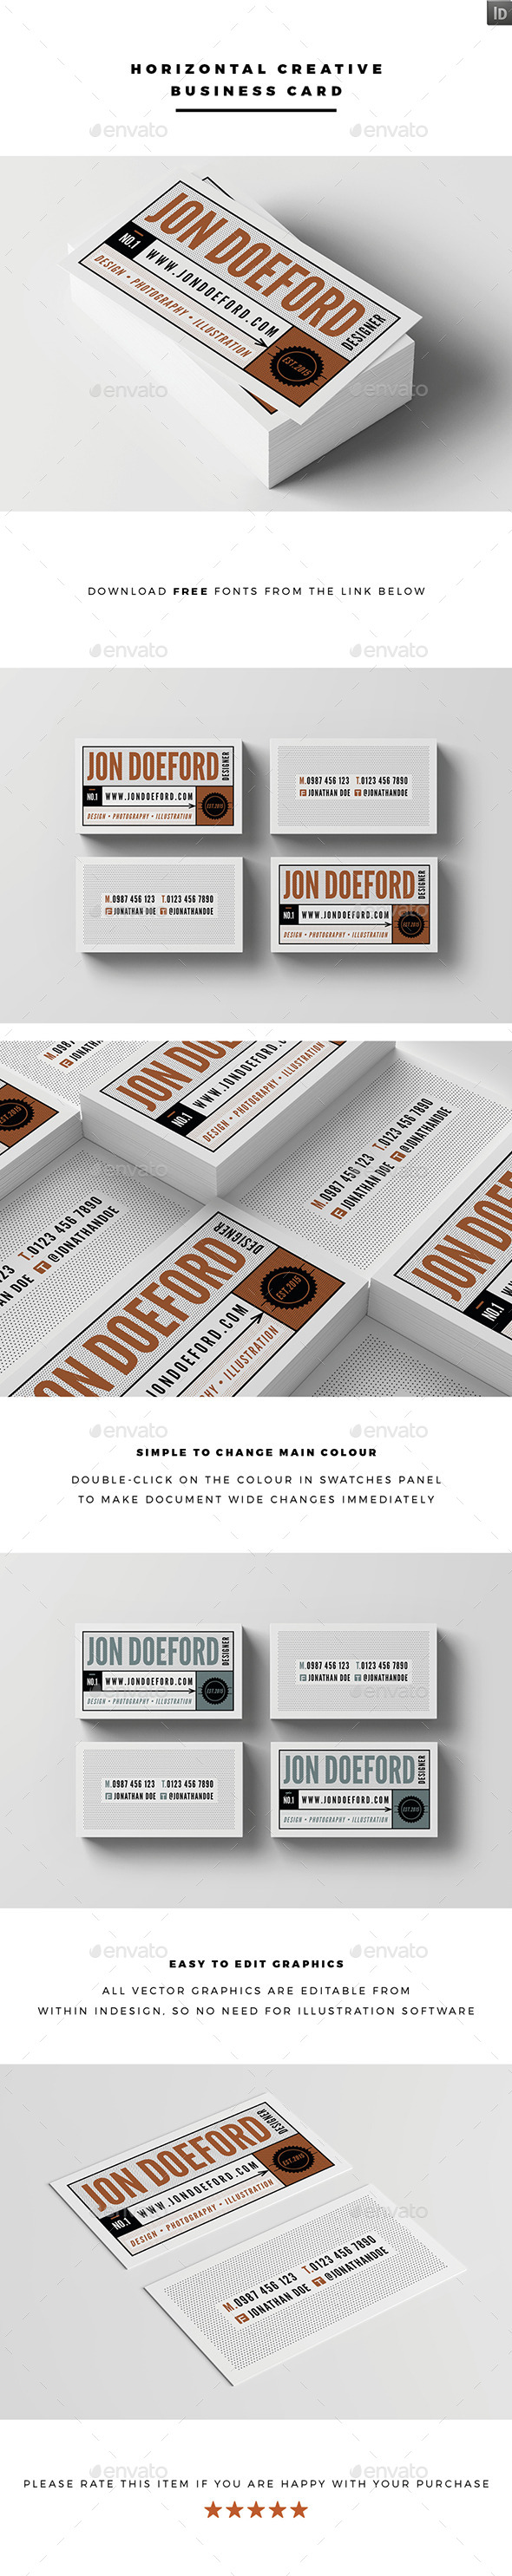 Horizontal Creative Business Card - Creative Business Cards